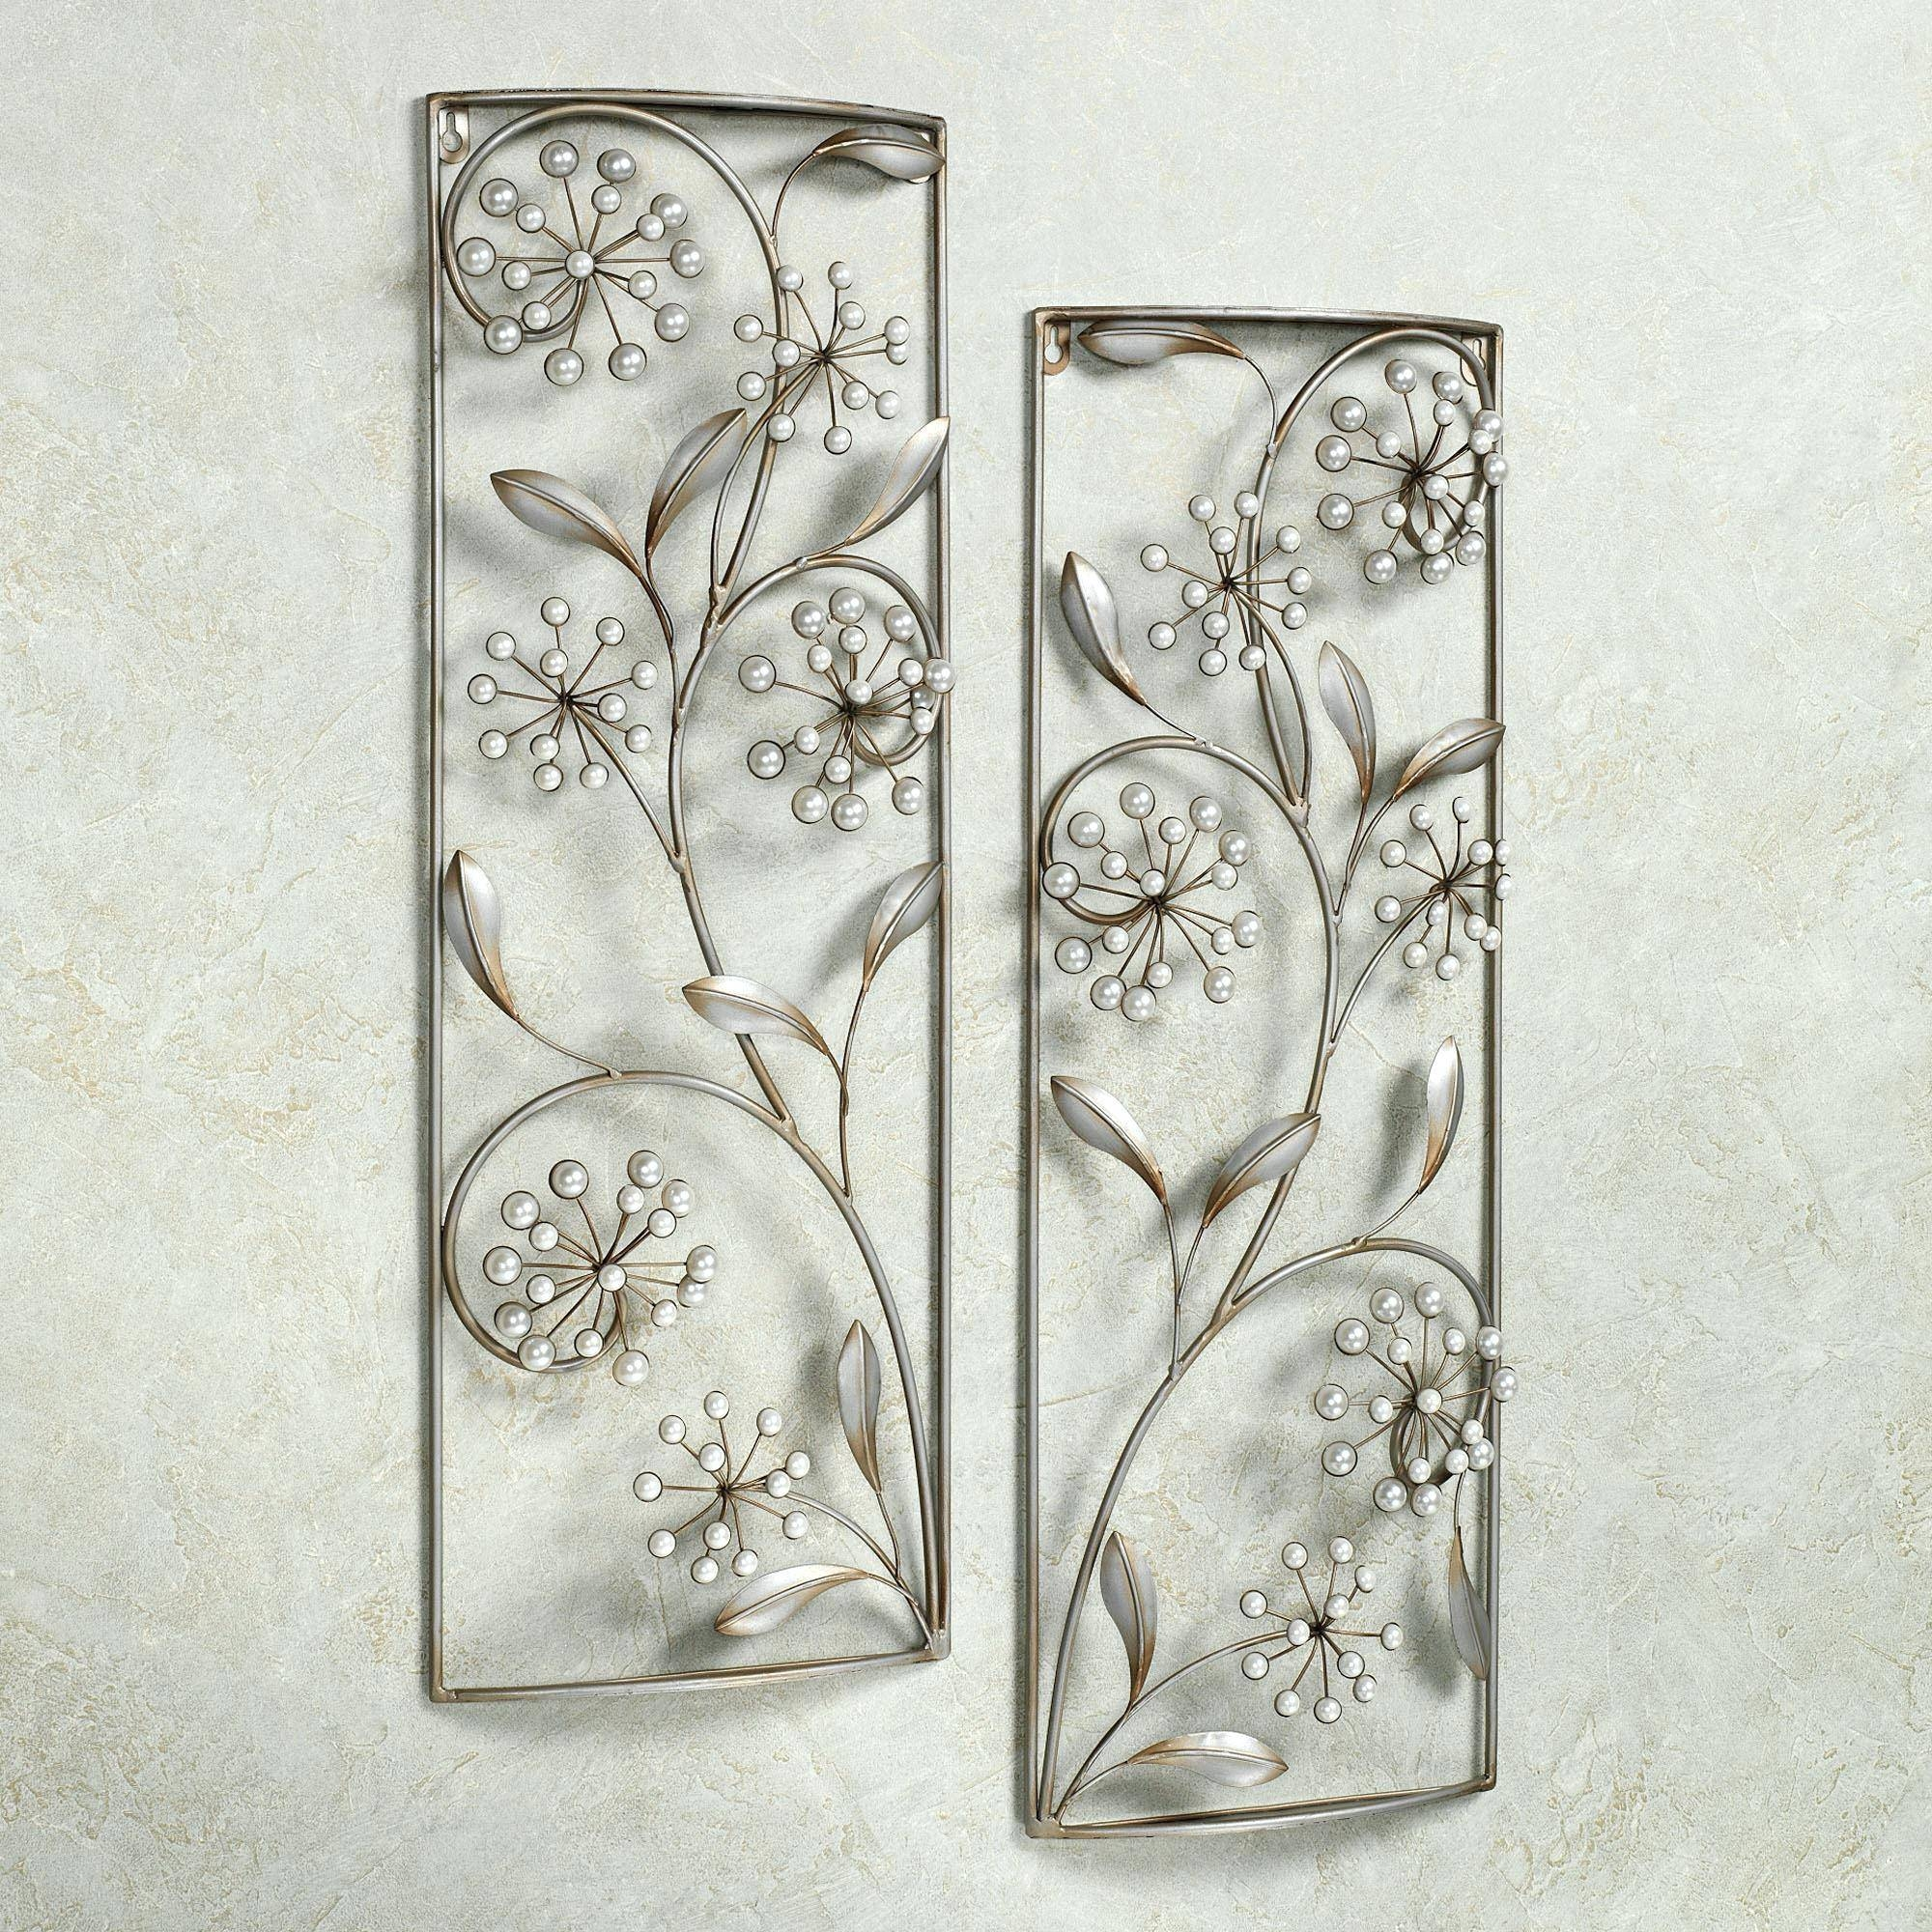 Wall Ideas : Catalonia Olive Wall Art Set Set Of Two Flower Metal With Regard To Newest Target Metal Wall Art (View 10 of 25)